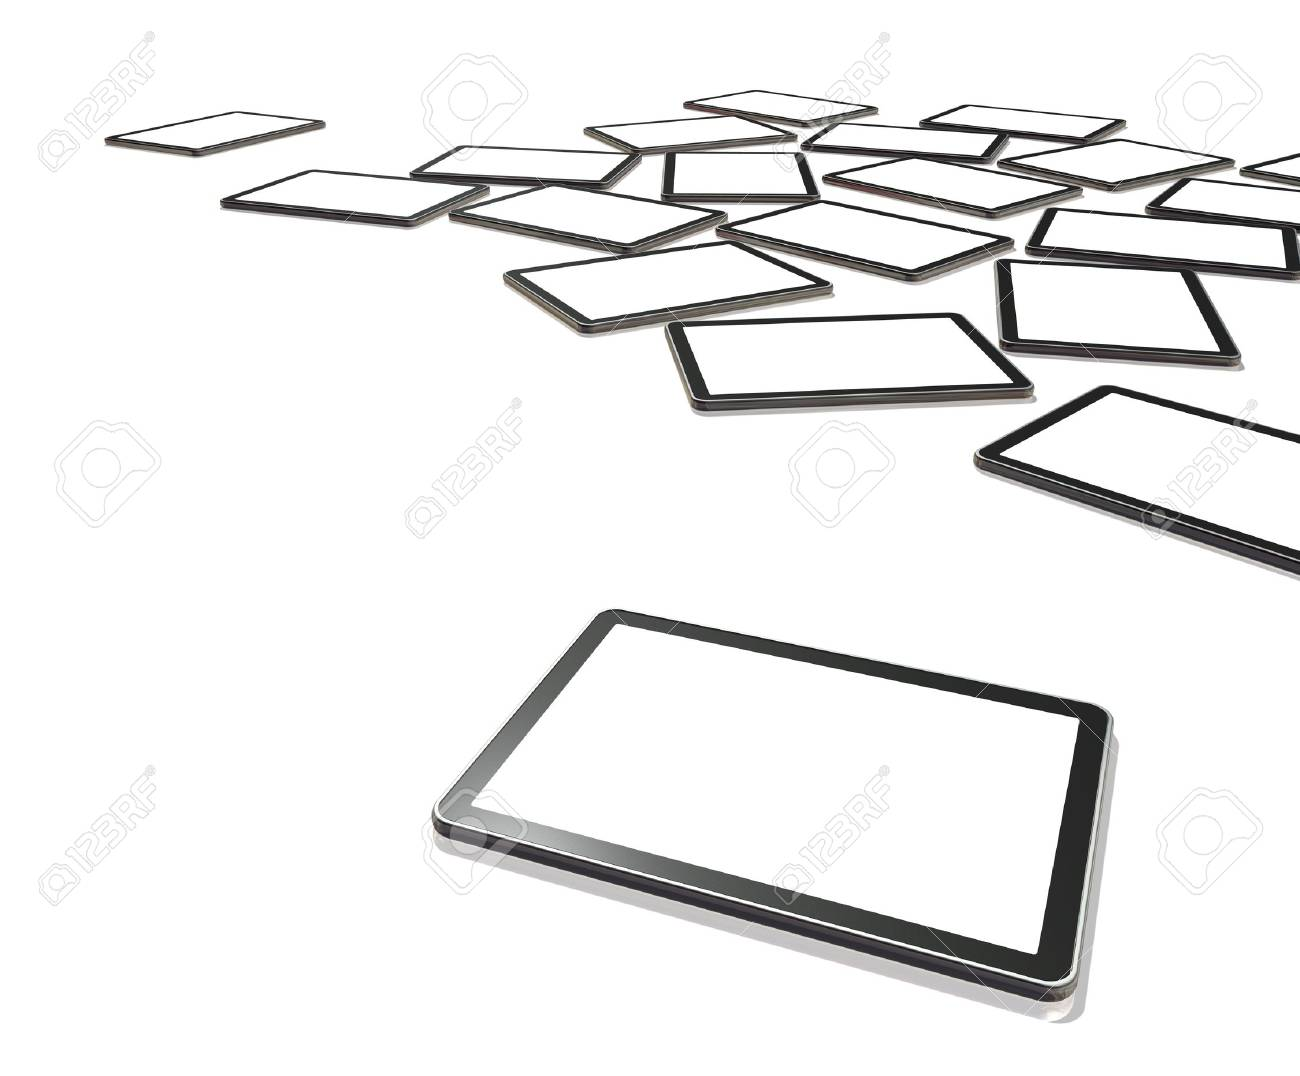 3D televisions, digital tablet PC isolated on white with screens clipping path Stock Photo - 9370820